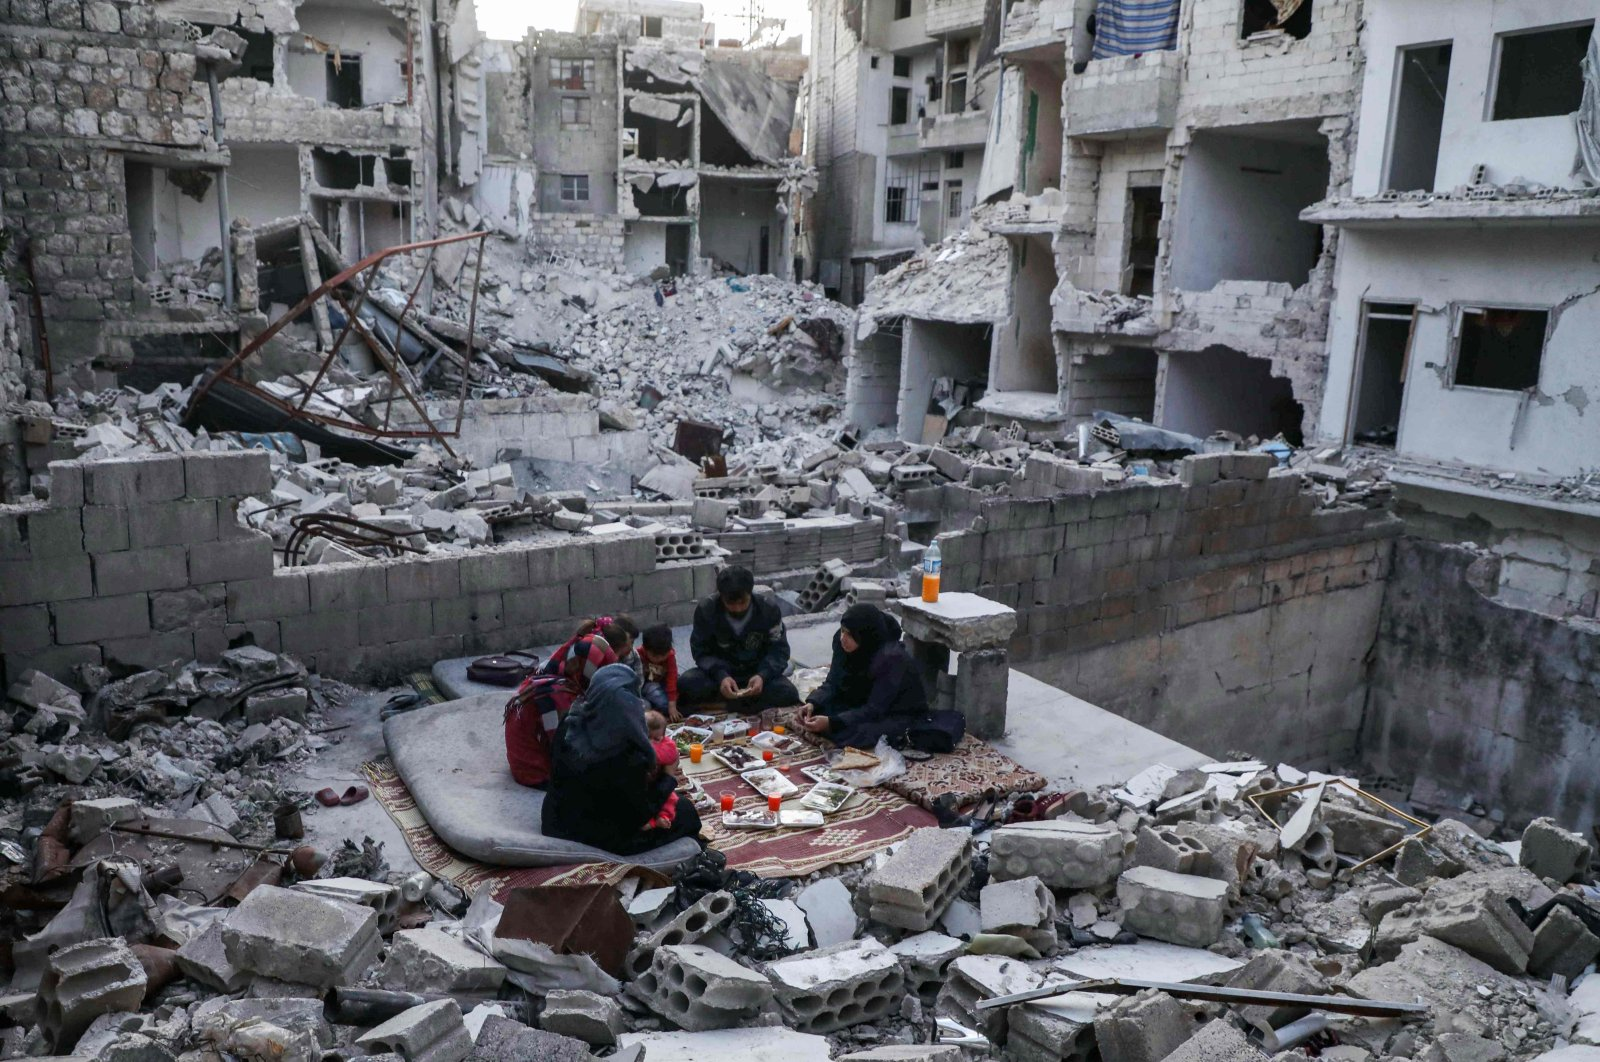 """Members of the displaced Syrian family of Tariq Abu Ziad, from the town of Ariha in the southern countryside of Idlib province, break their fast together for the sunset """"iftar"""" meal in the midst of the rubble of their destroyed home upon their return to the town, May 4, 2020. (AFP)"""